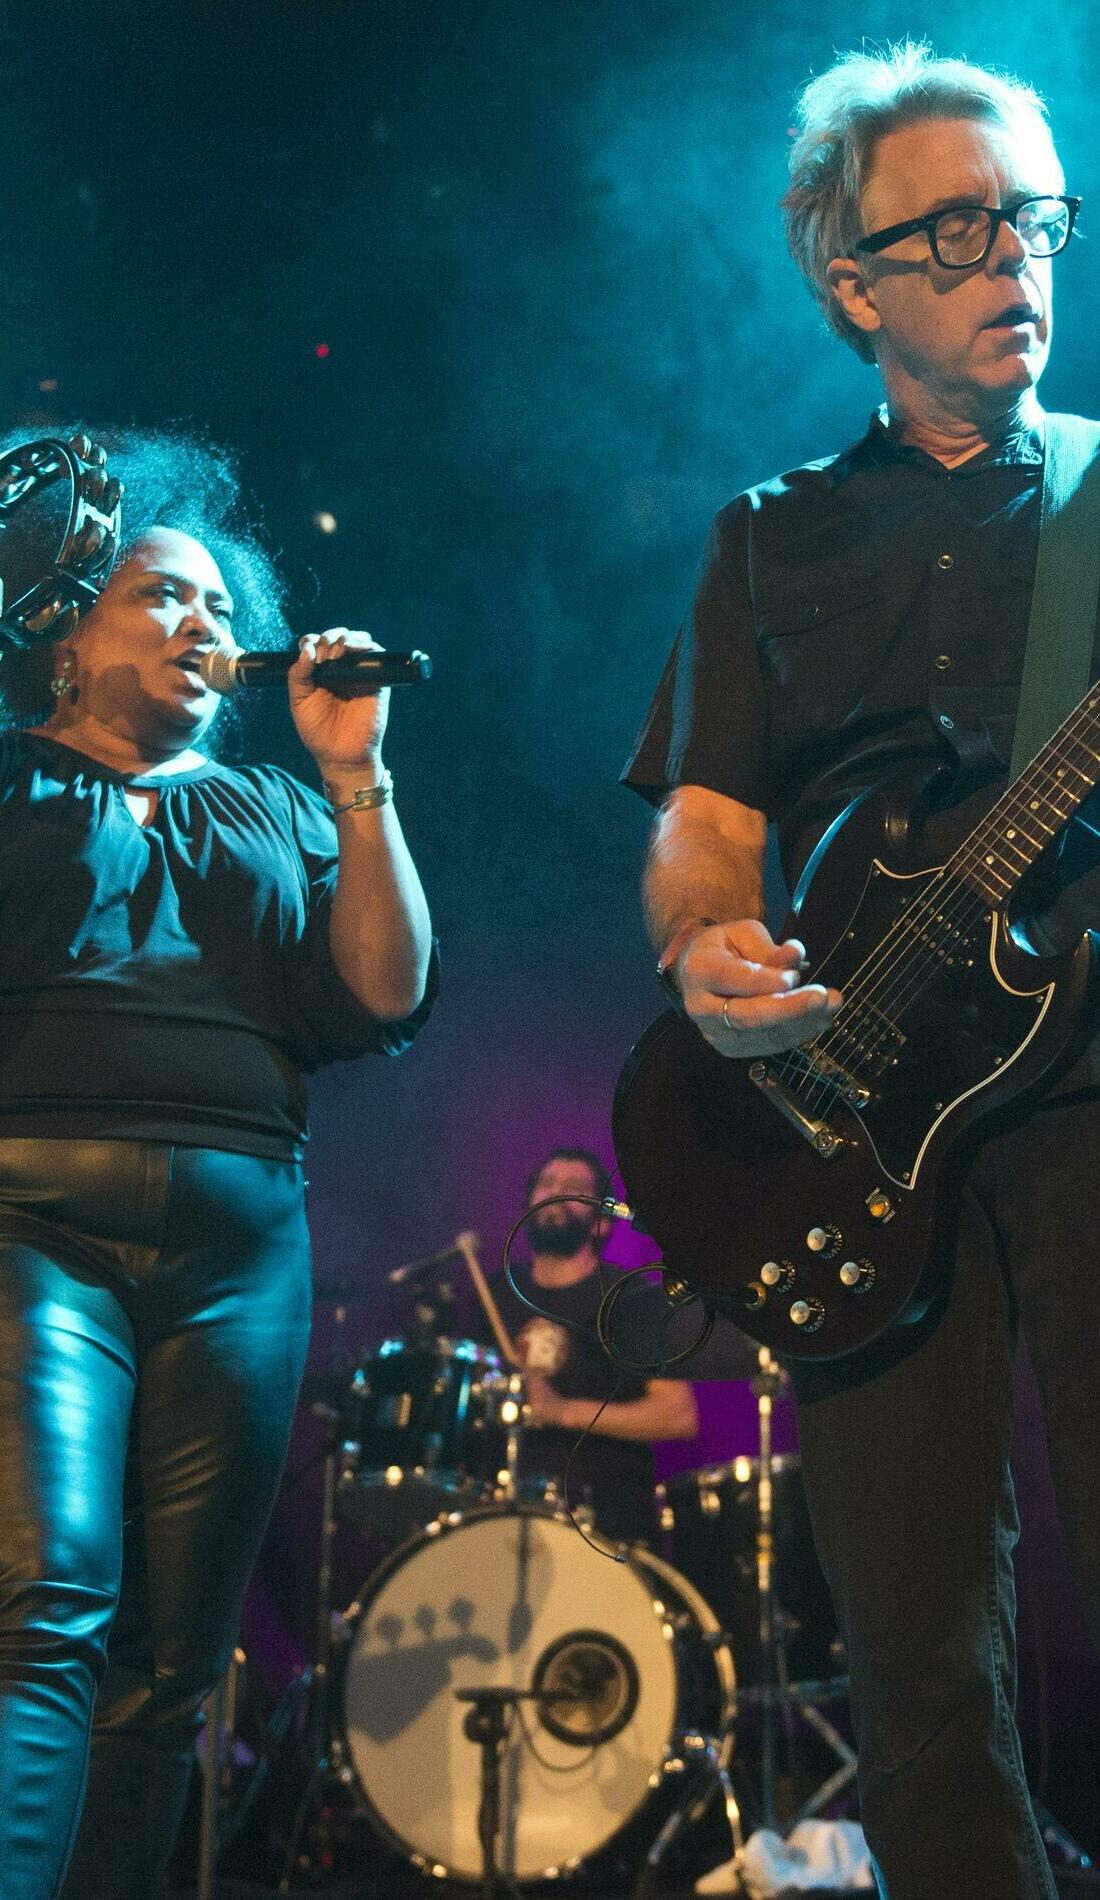 A The BellRays live event